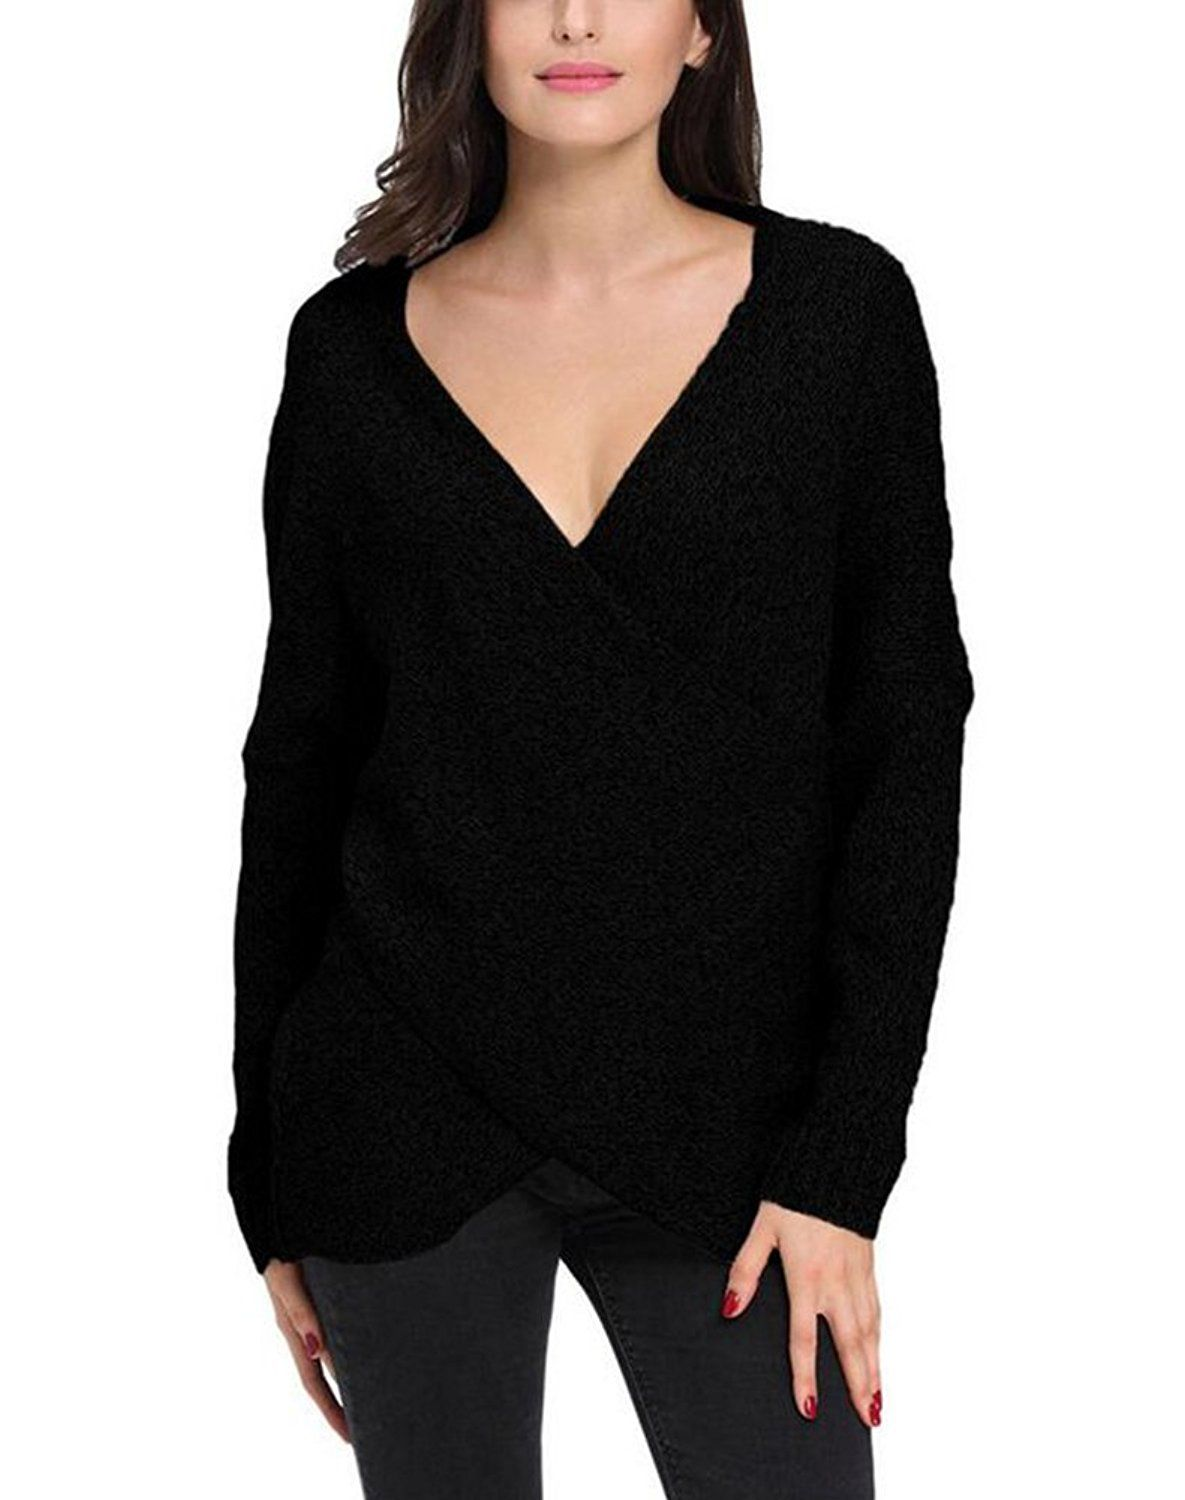 9f2d8187a165b1 Price: £29.90 Sale: £9.90 MissSoul Womens Knitted Jumpers Drop Shoulder  Sweatshirt Cross Wrap Pullover Sweater Tops: Amazon.co.uk: Clothing